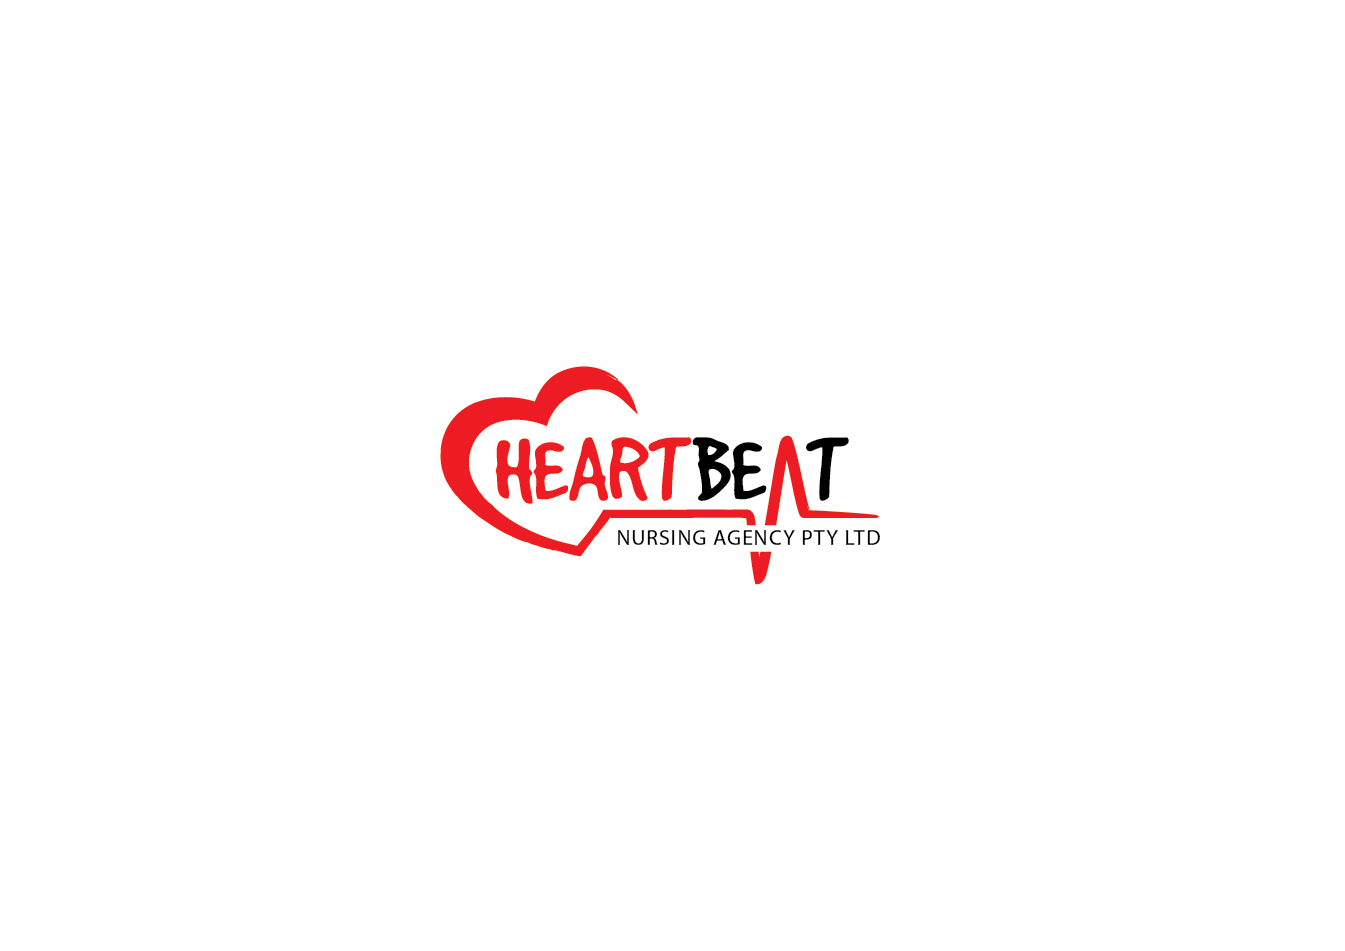 Heartbeat logo design images for Heartbeat design